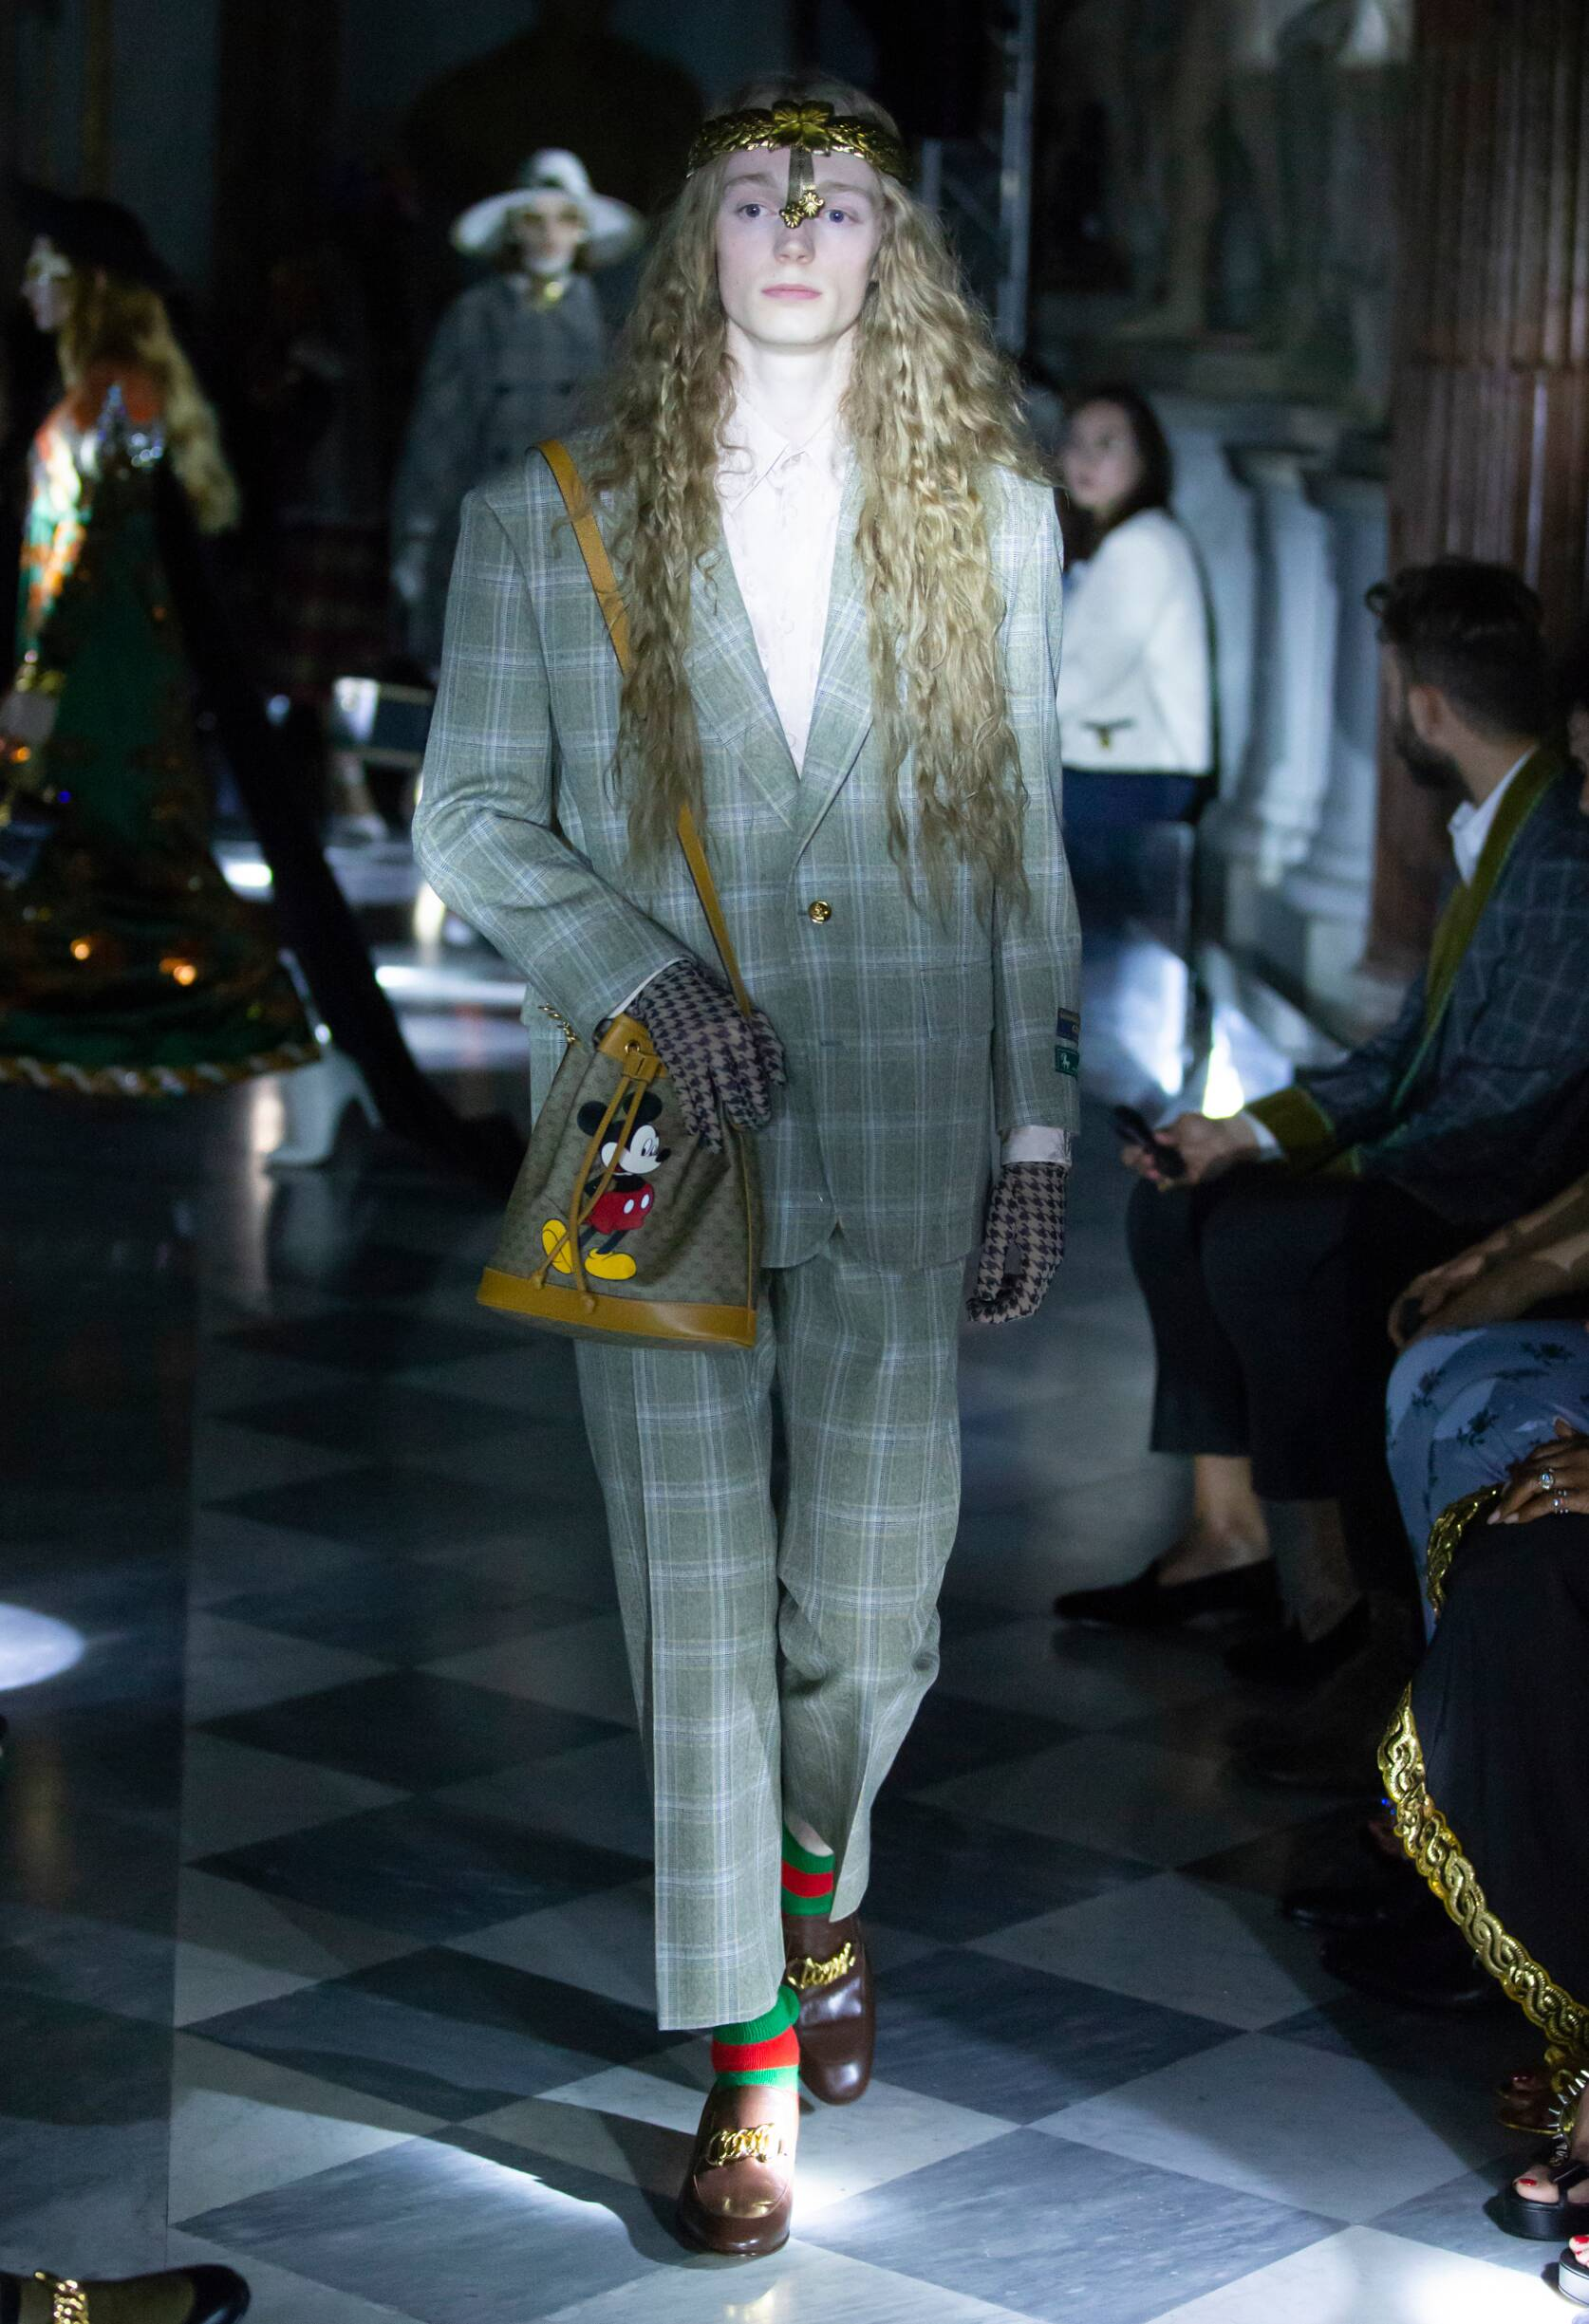 Gucci Cruise 2020 Collection Look 8 Rome